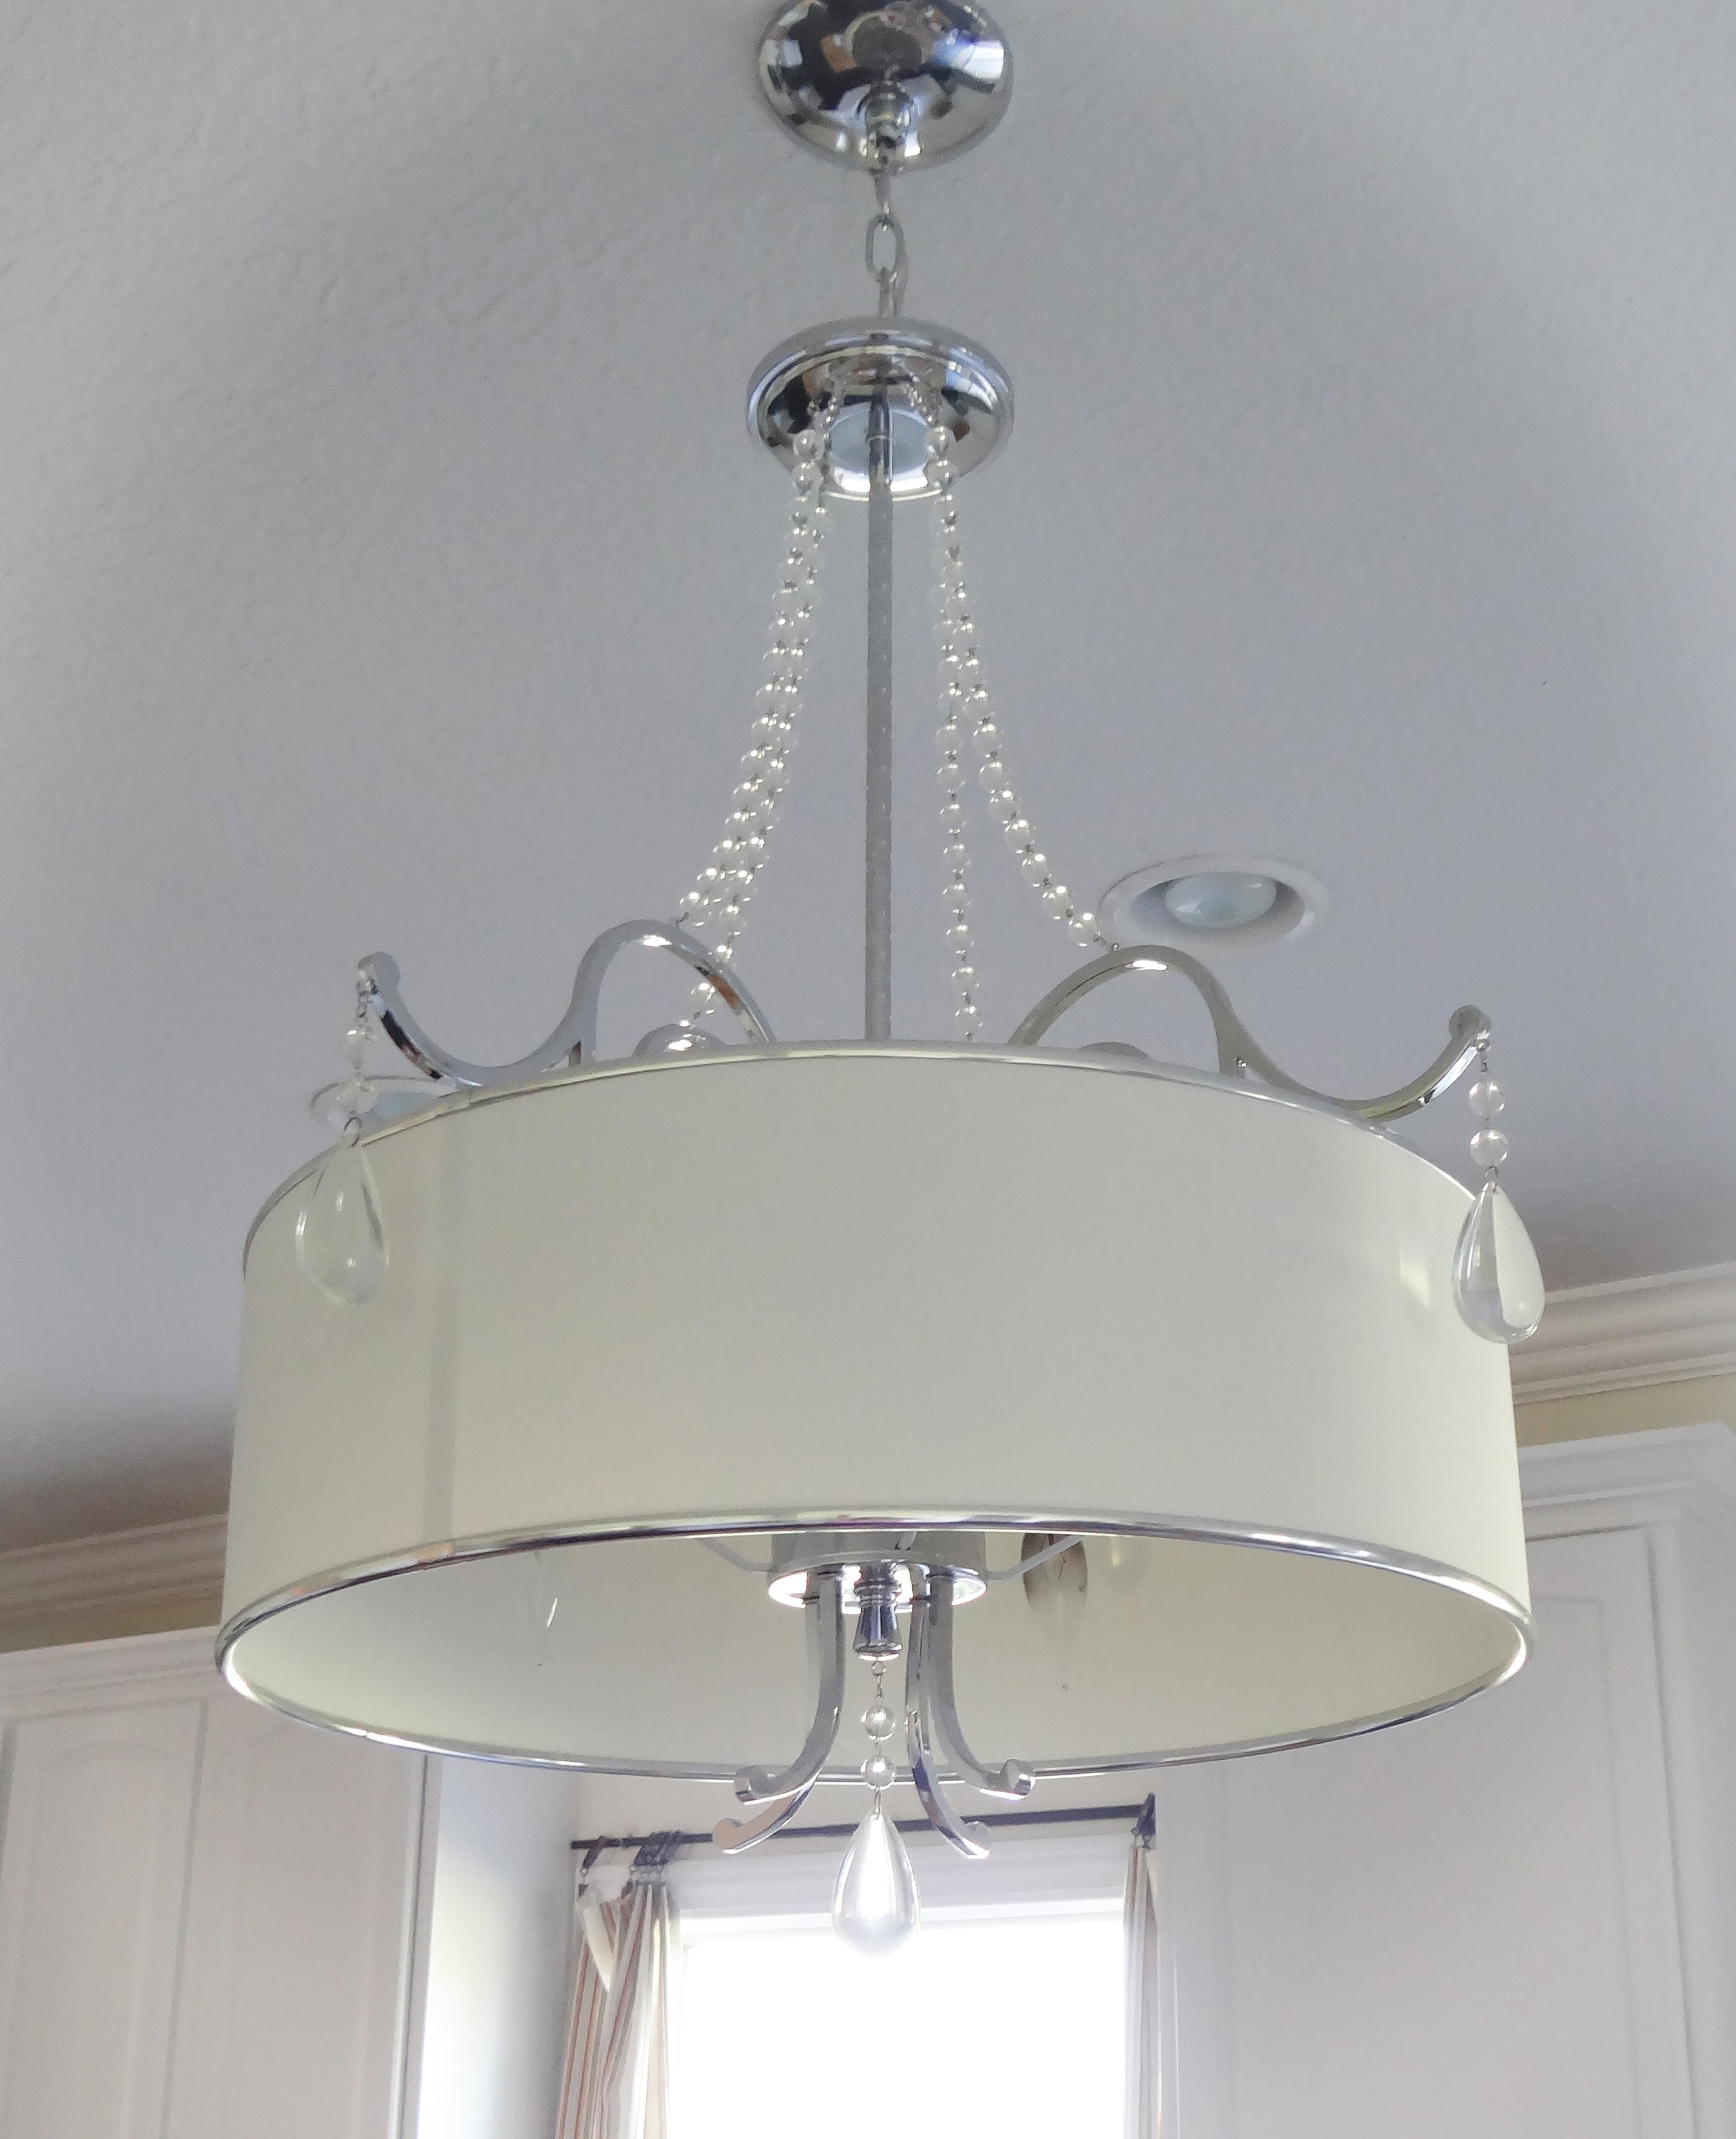 Chandeliers Design : Magnificent Kitchen Light Fixture Costco Pertaining To Most Up To Date Costco Lighting Chandeliers (View 7 of 20)